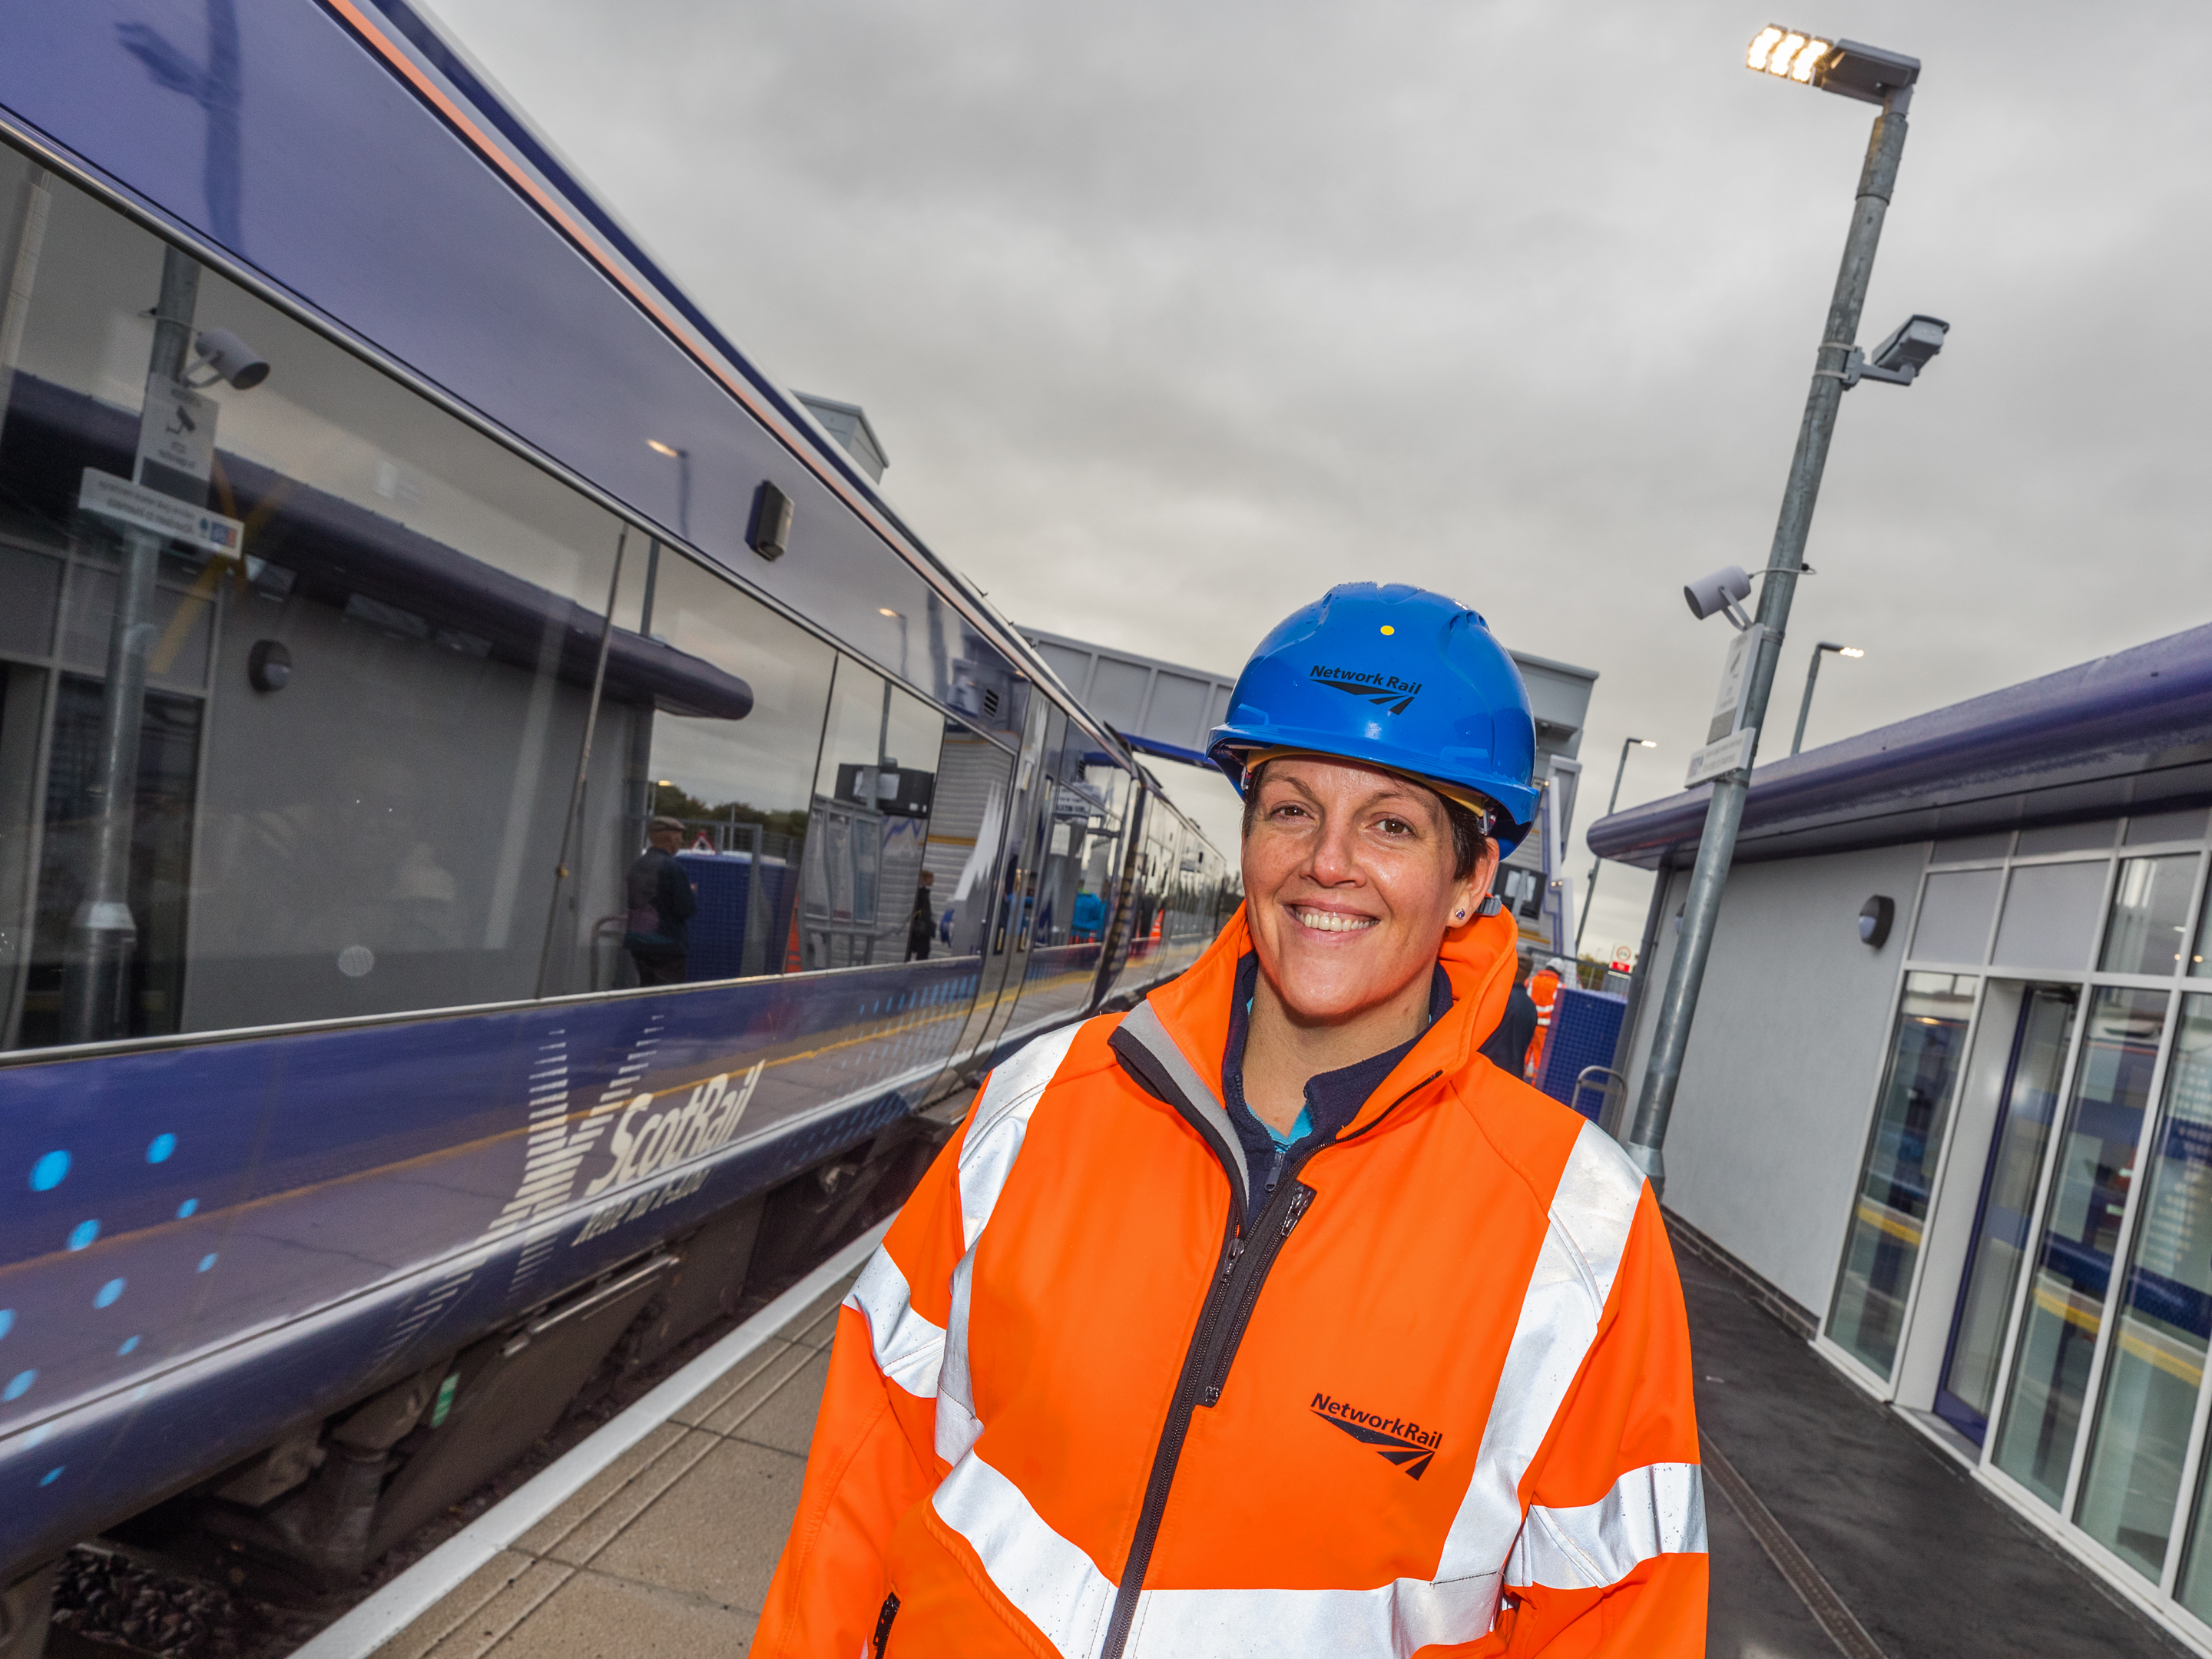 Network Rail's Stacey Macdonald welcomes the first services to the new train station in Forres.